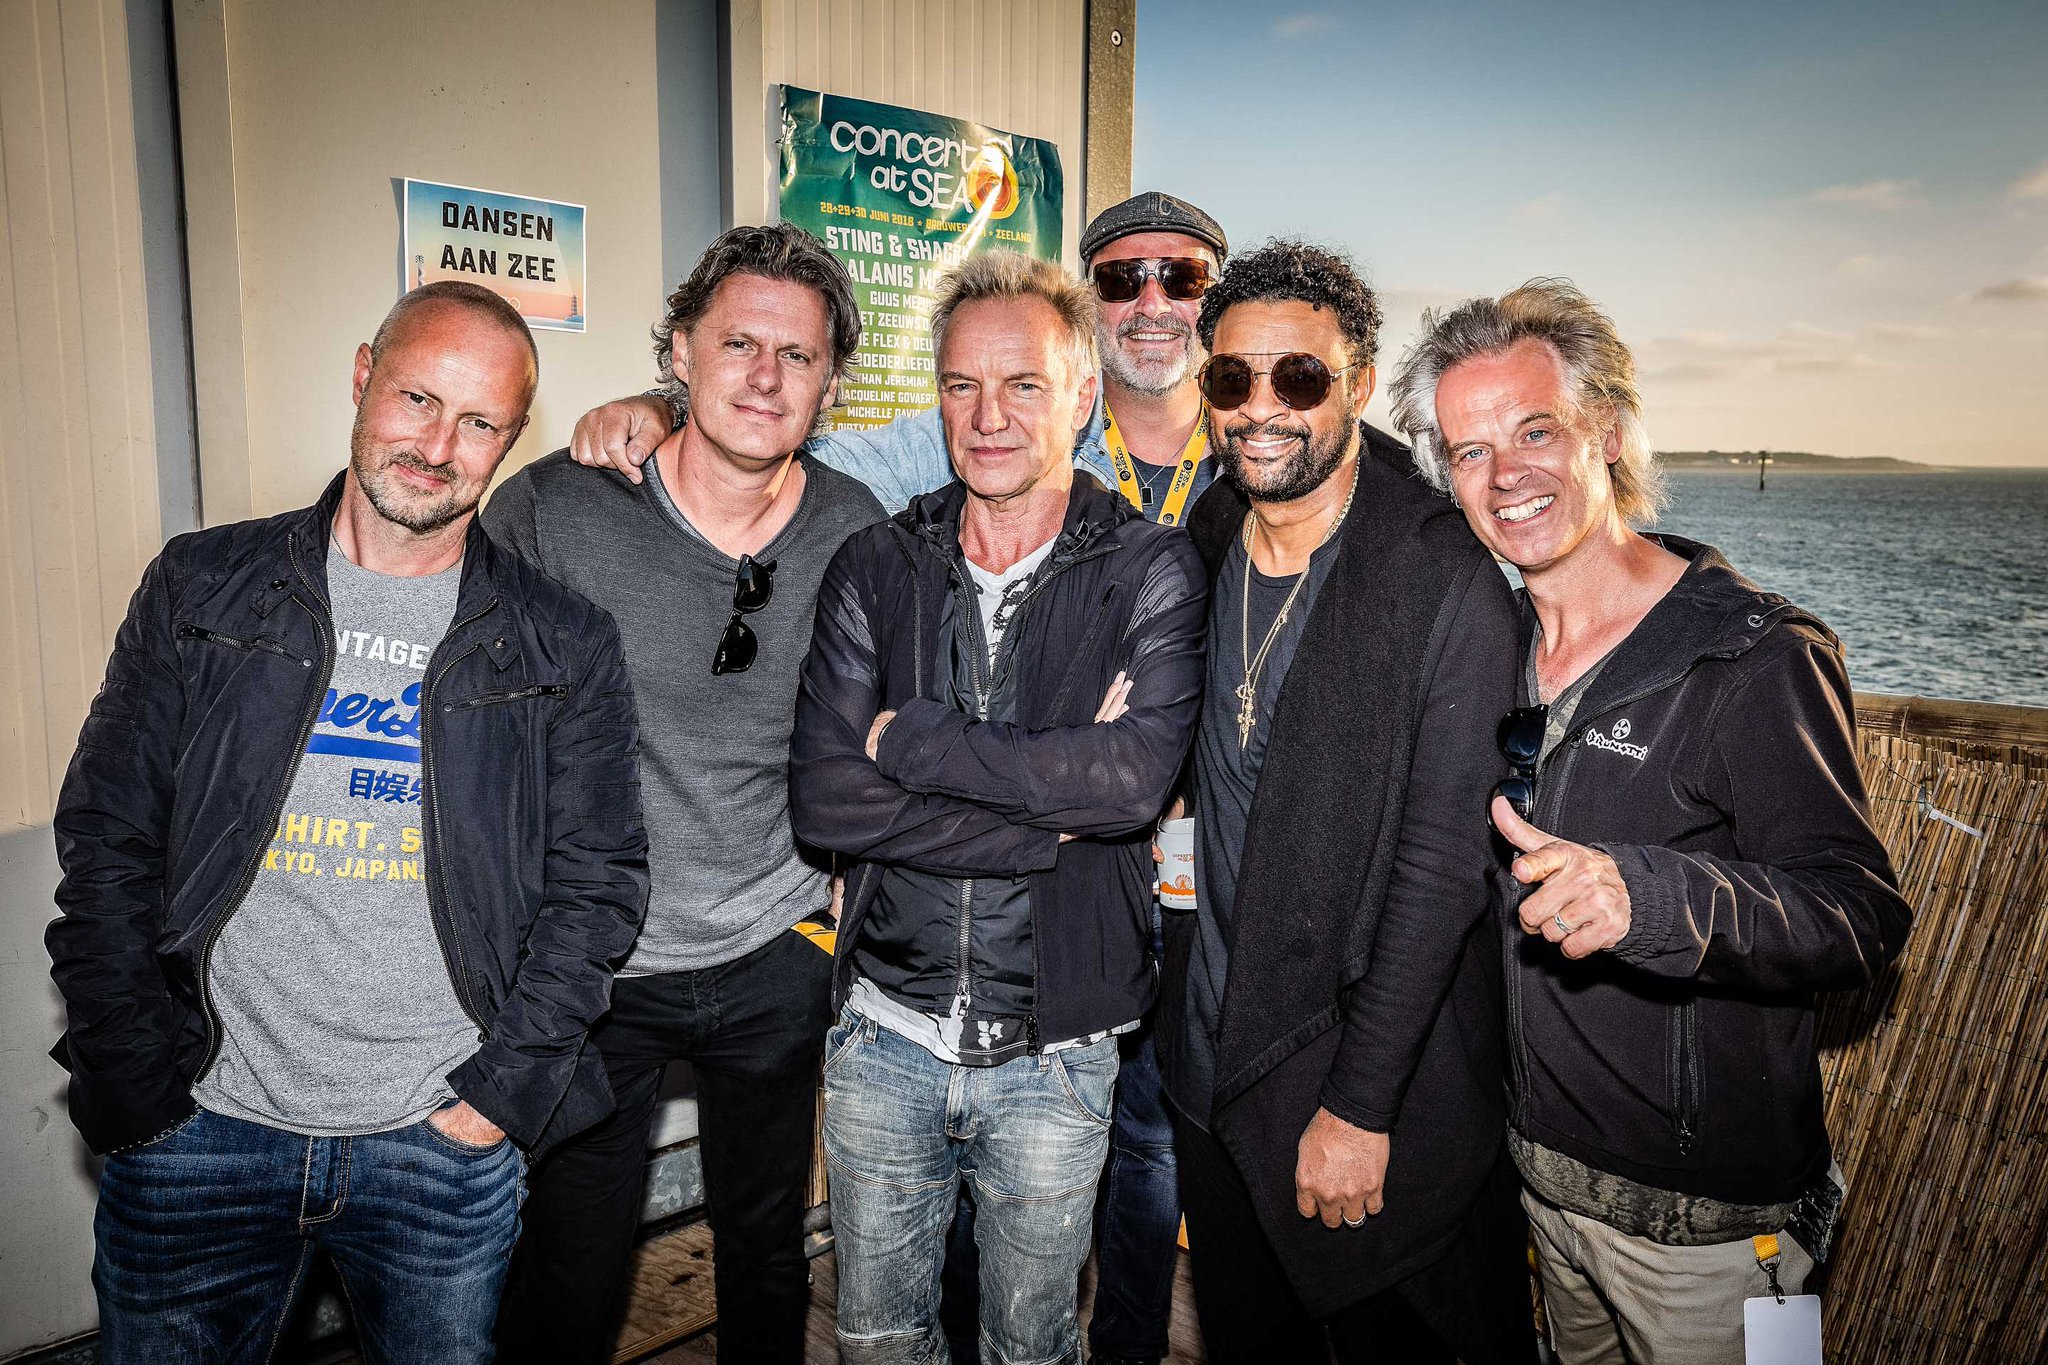 Oh, just hanging out with @blof in Zeeland #ConcertAtSea @DiRealShaggy #Netherlands. https://t.co/IH9KcVkXCg